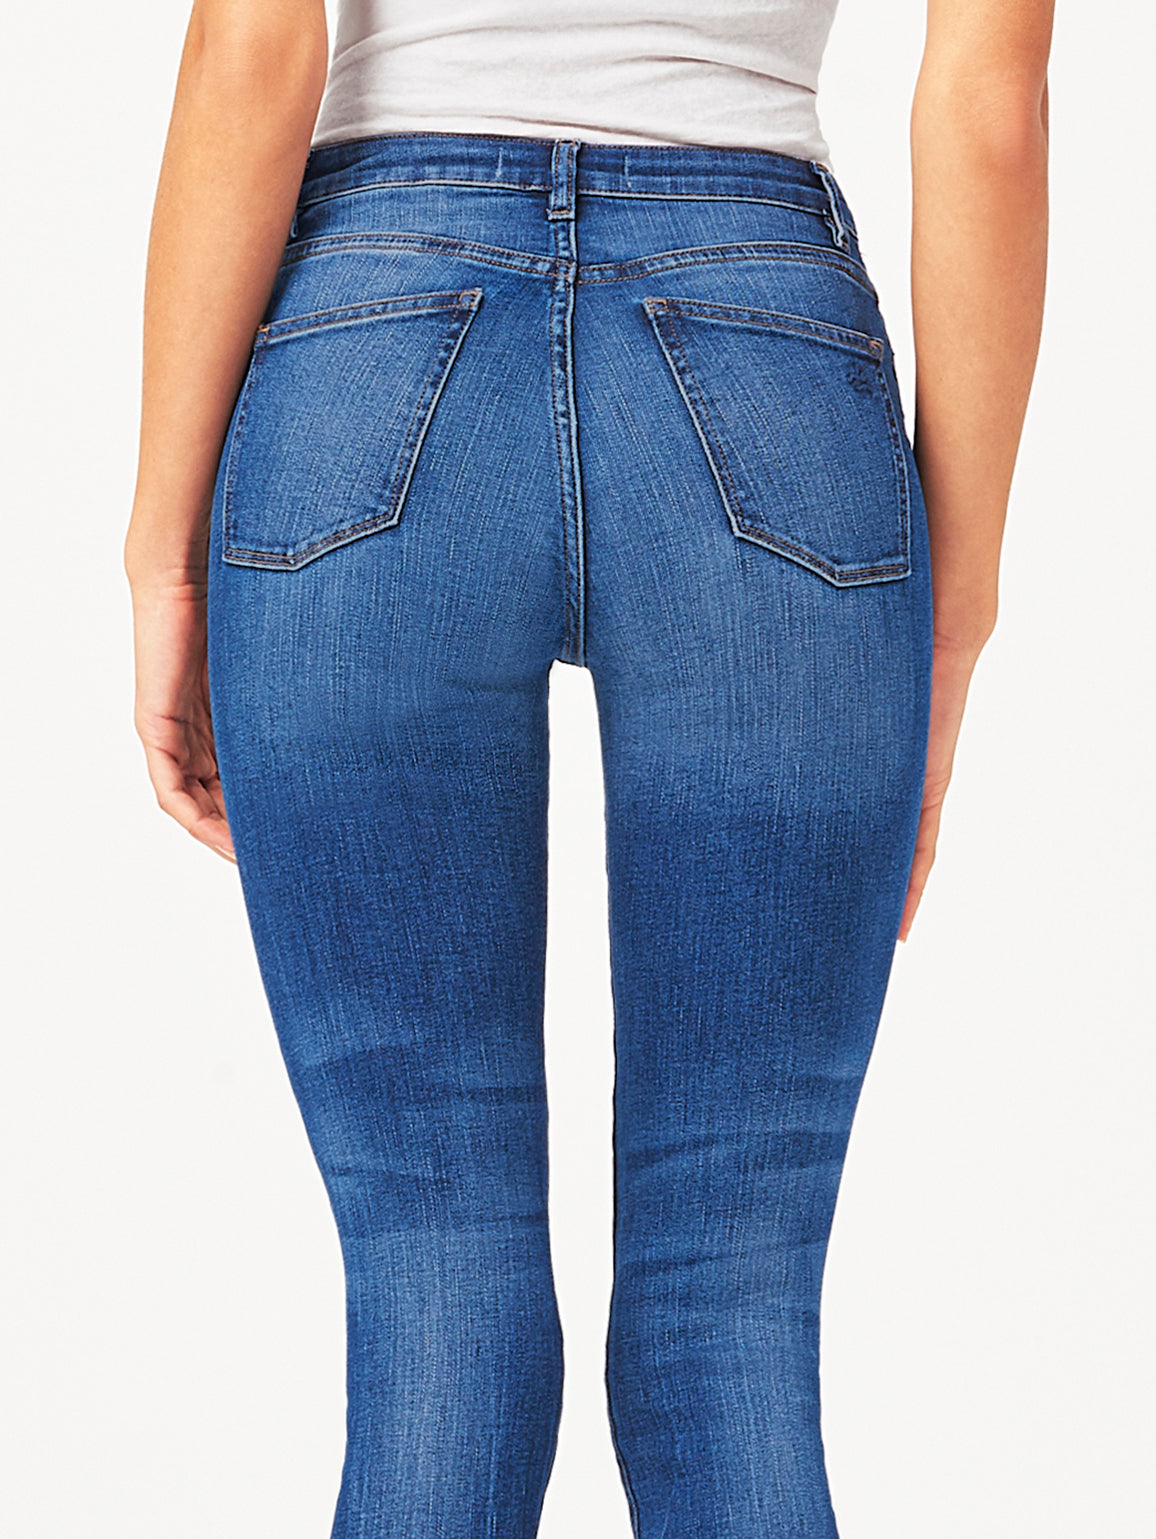 Chrissy Ultra High Rise Skinny | Bal Harbour DL 1961 Denim